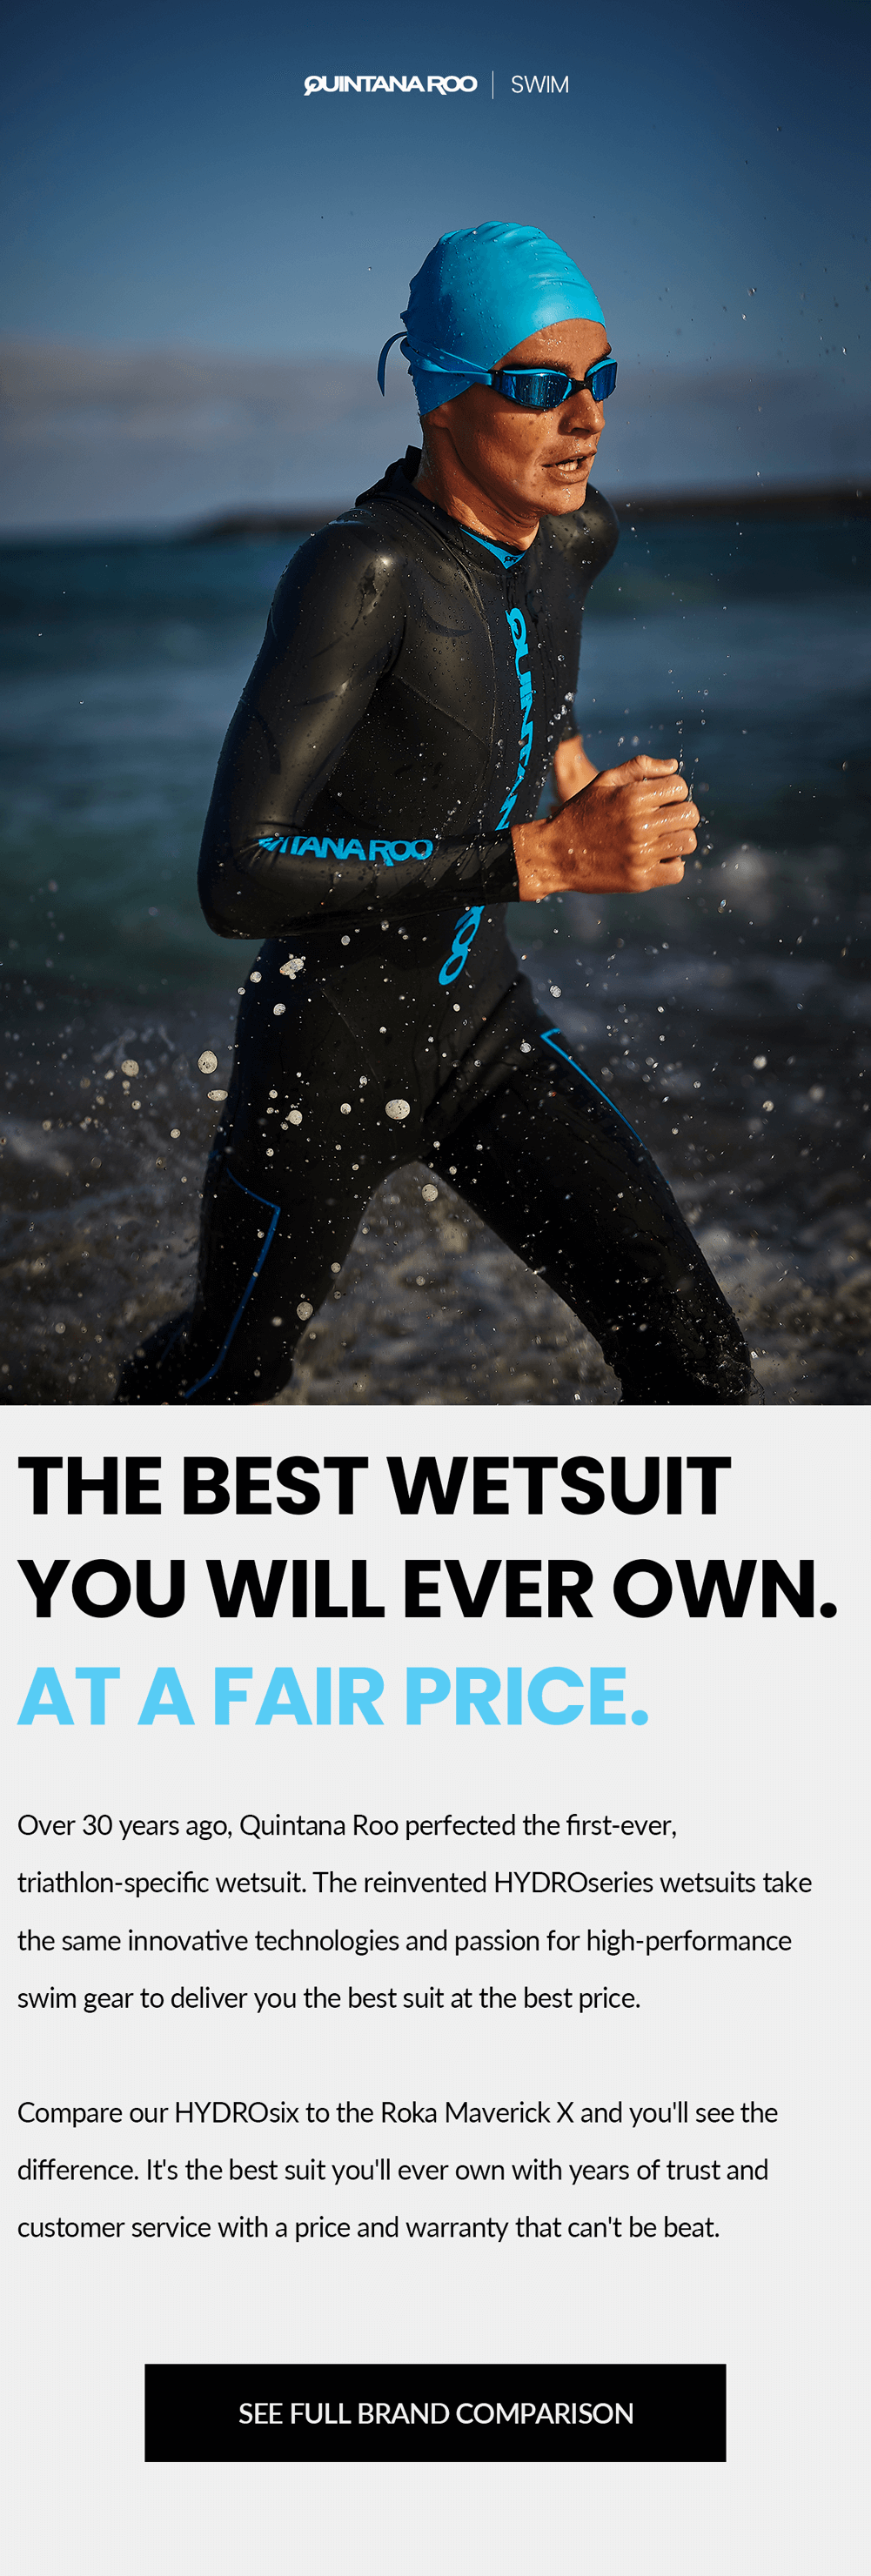 The best wetsuit you will ever own. At a fair price. Compare our HYDROsix to the Roka Maverick X and you'll see the difference.